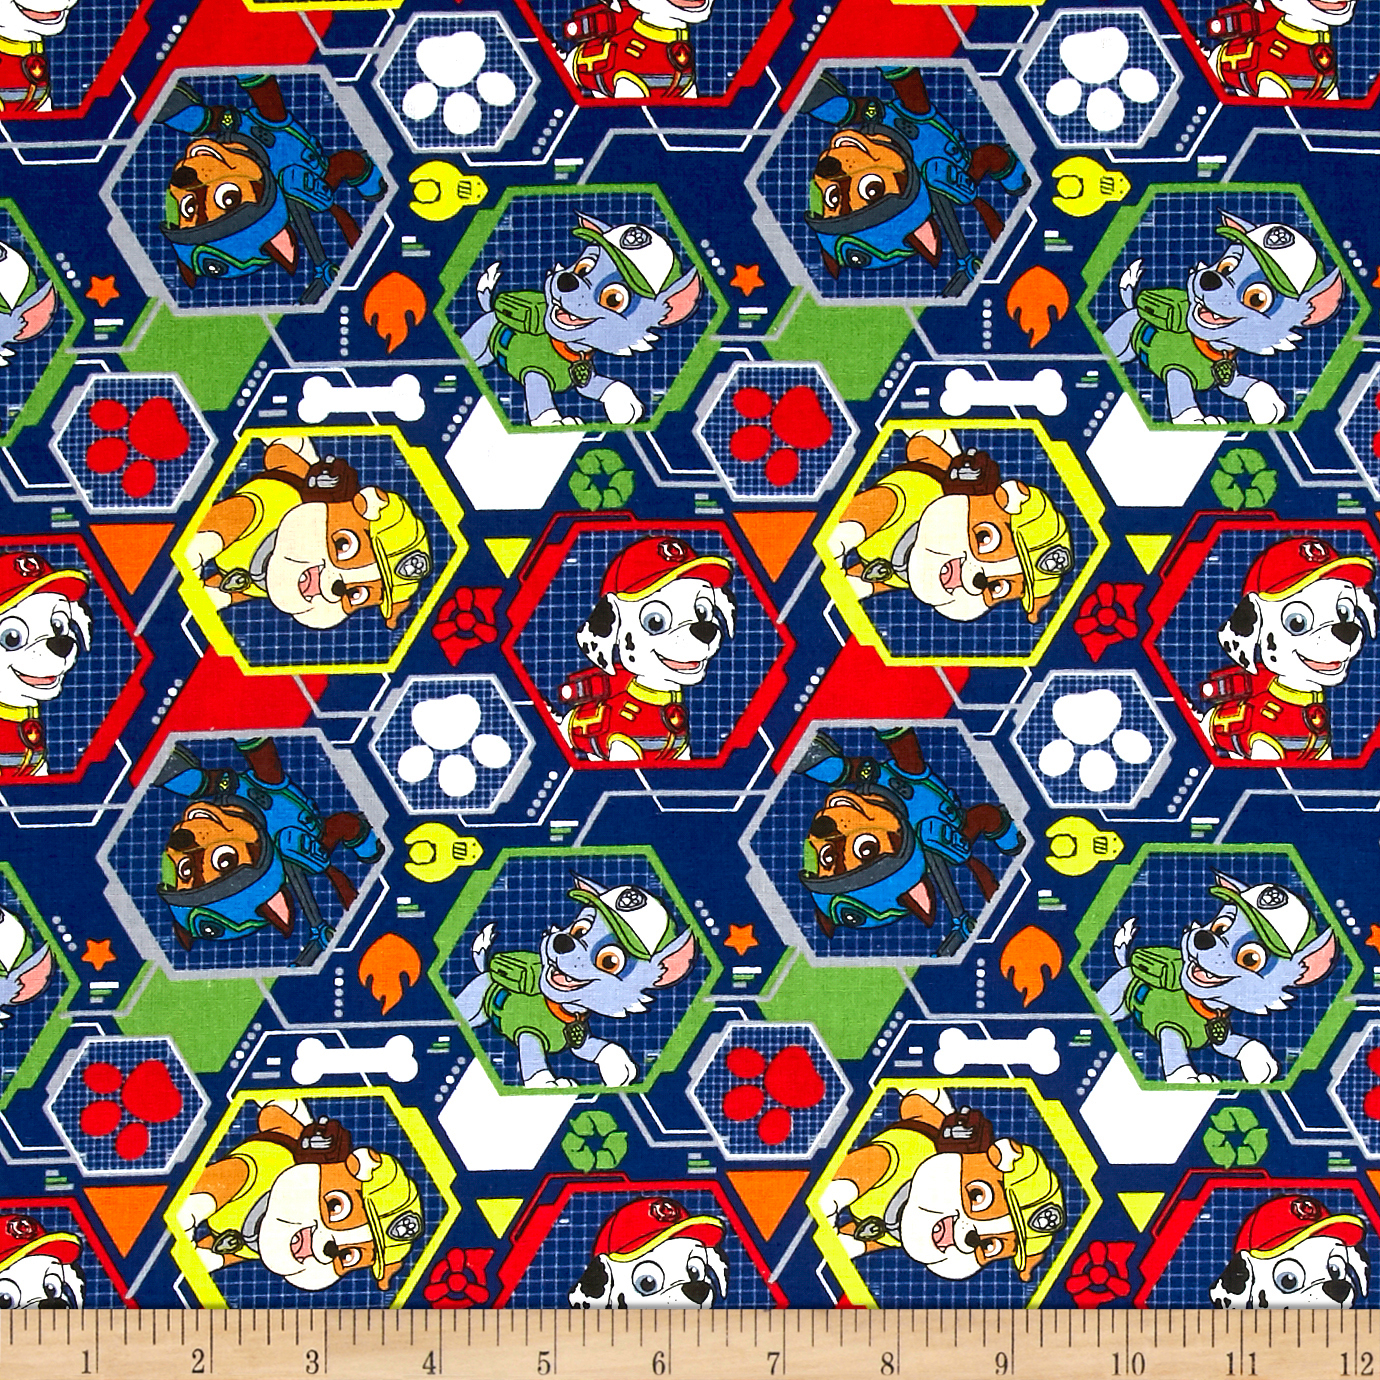 Nickelodeon Paw Patrol Mission Pawsible Navy Fabric by David in USA